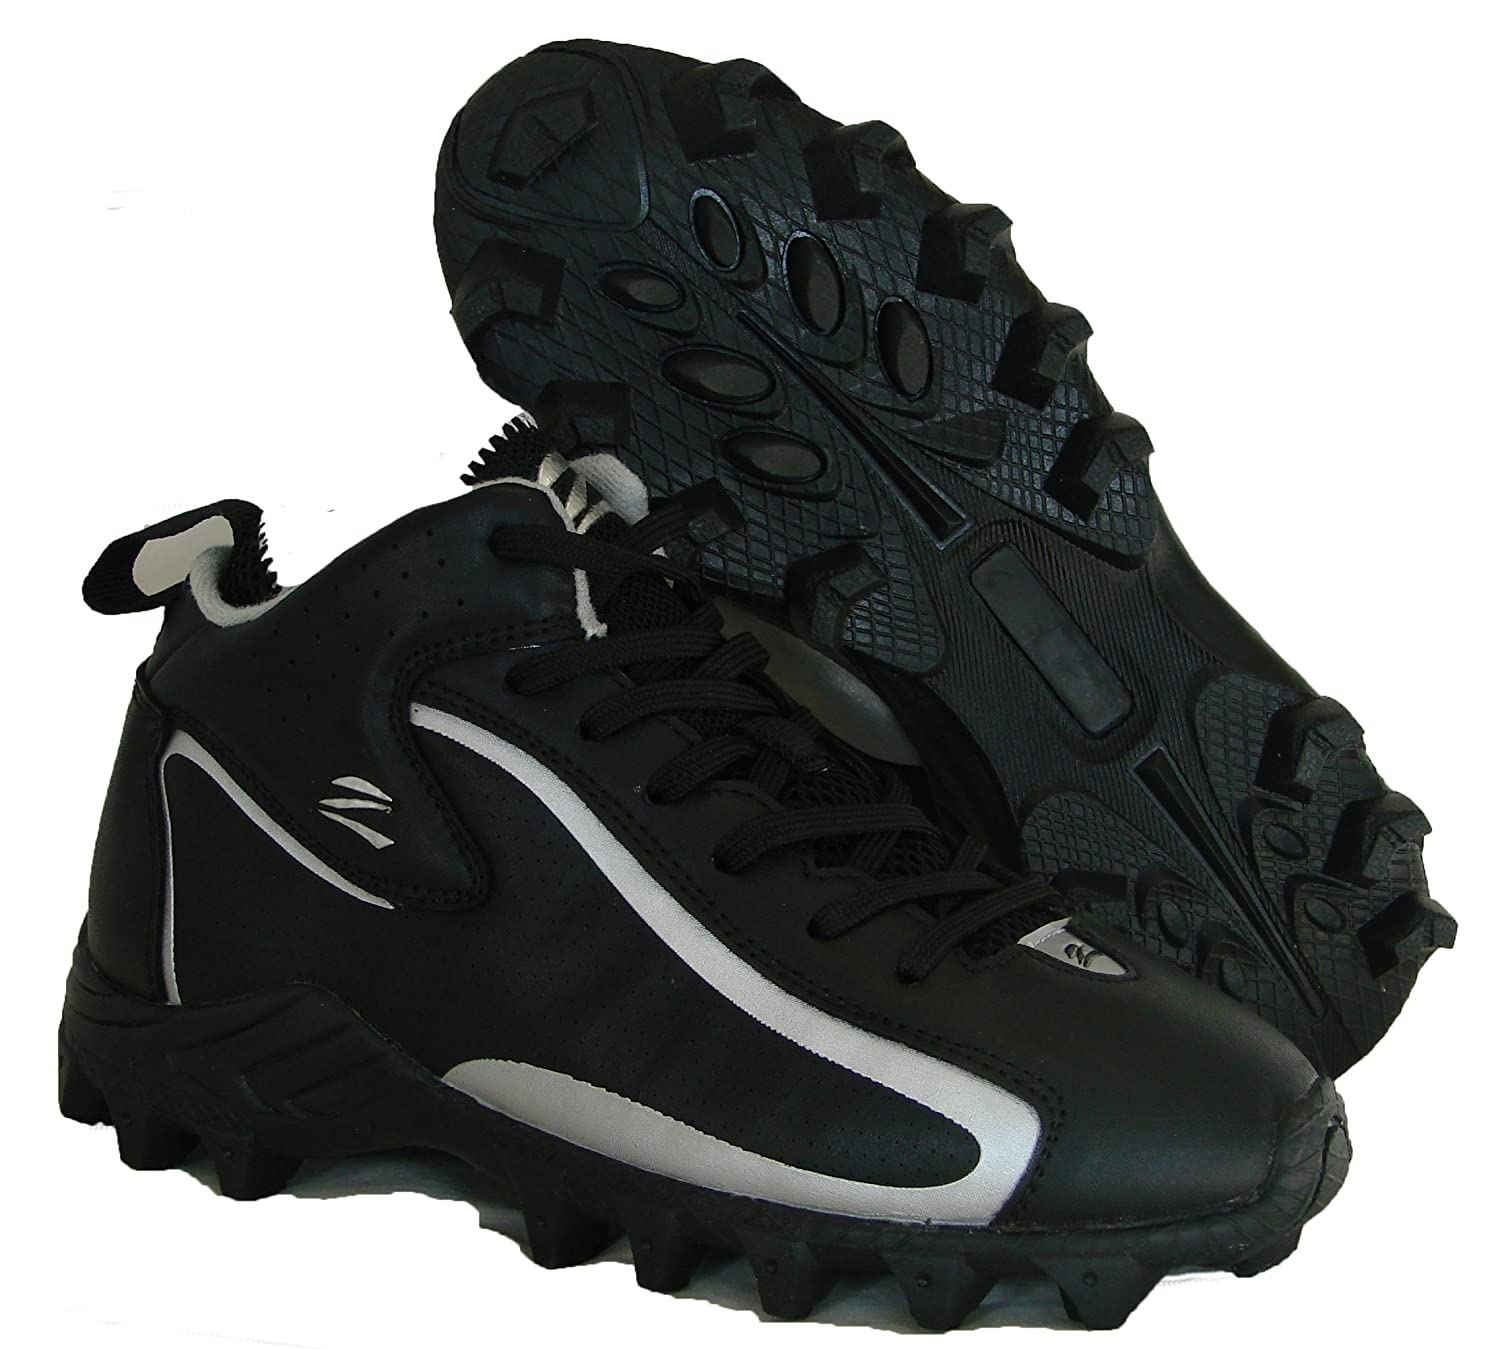 zephz WideTraxx Football Cleat Youth